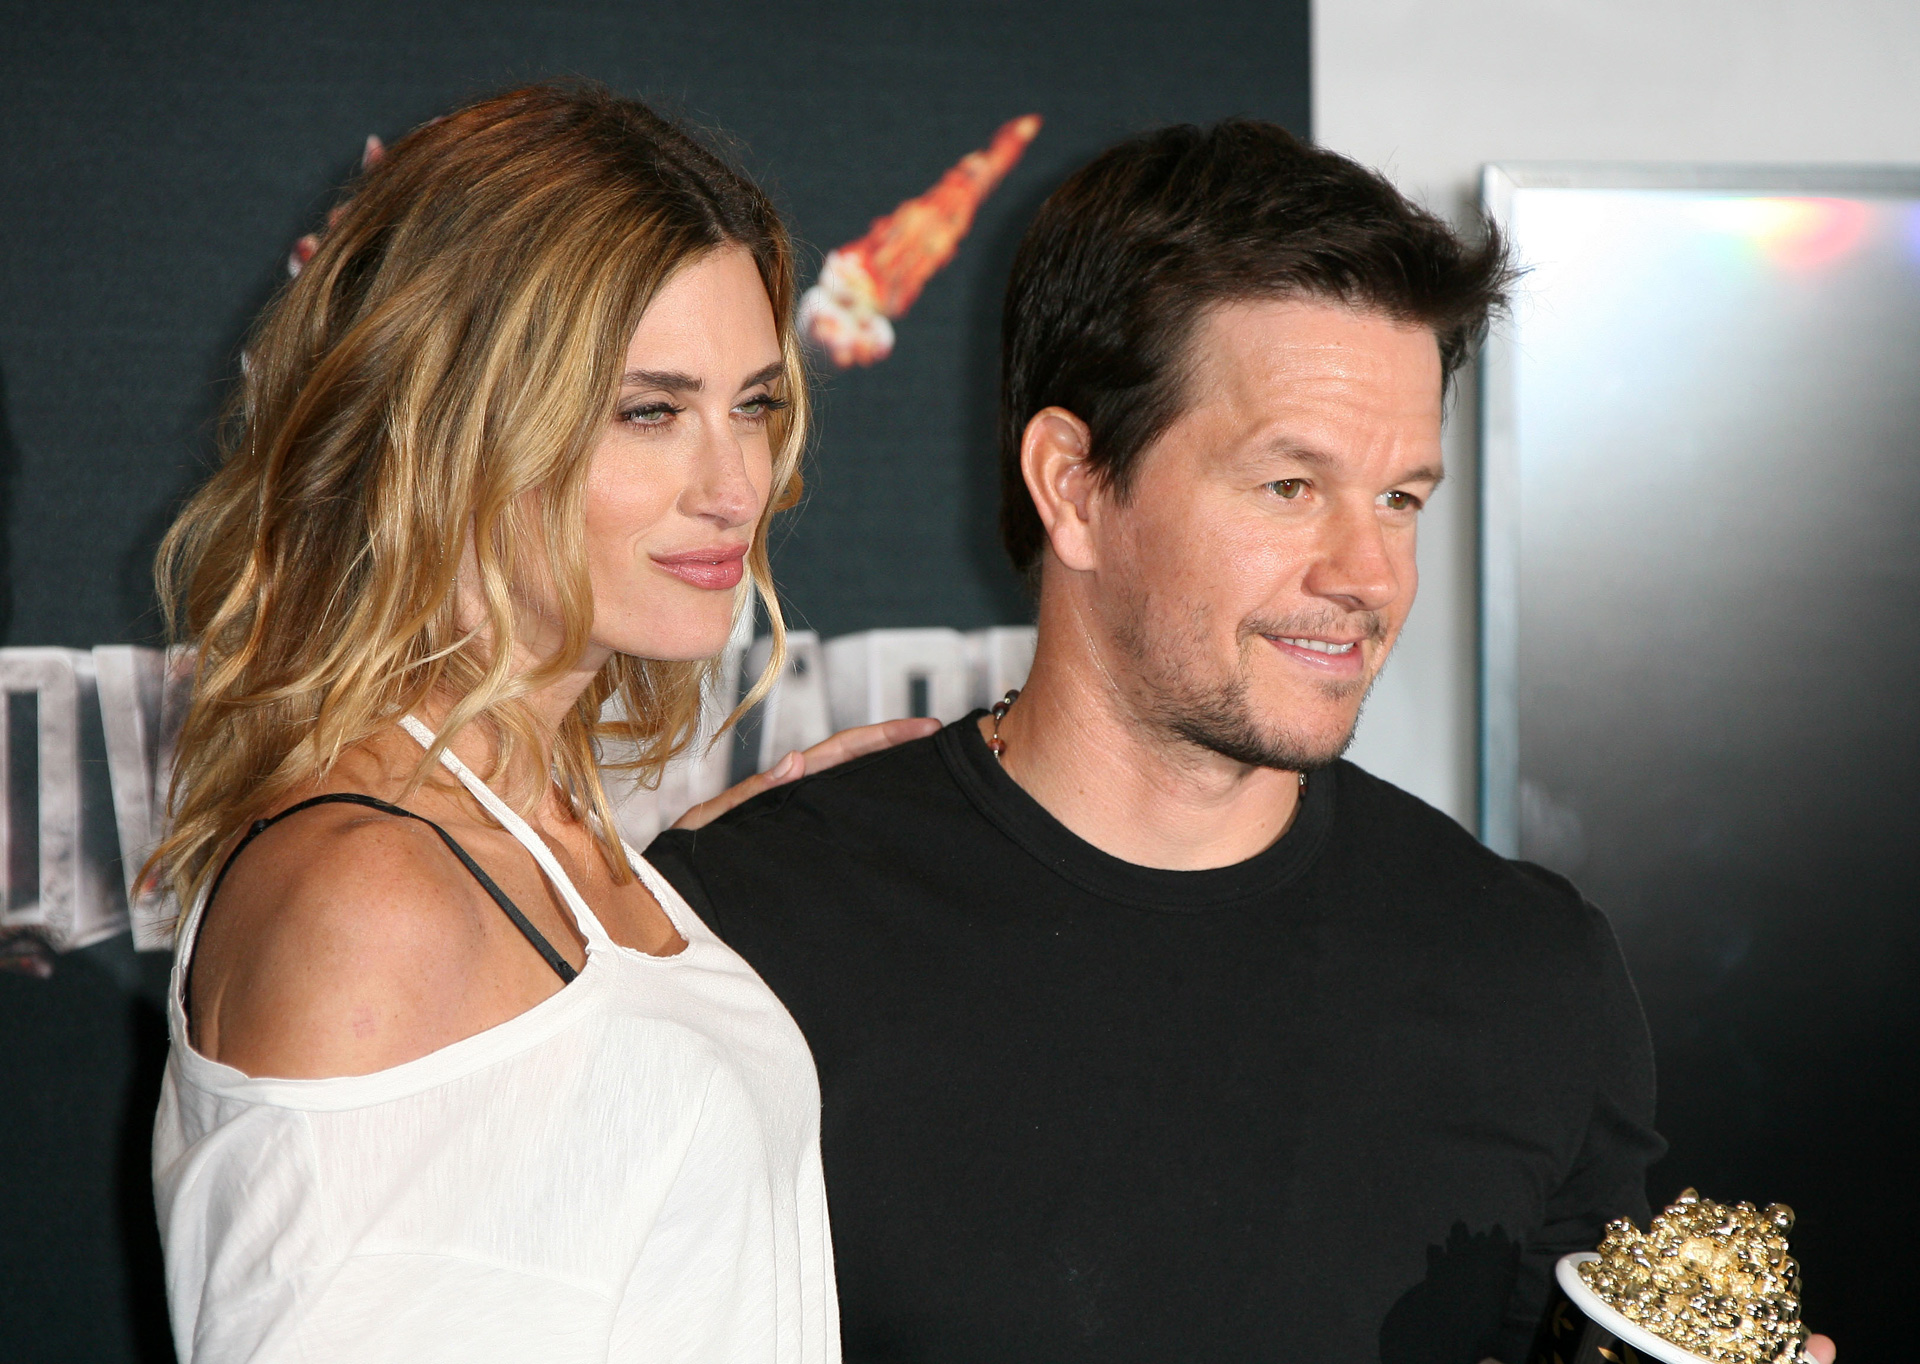 Mark Wahlberg's relationship status